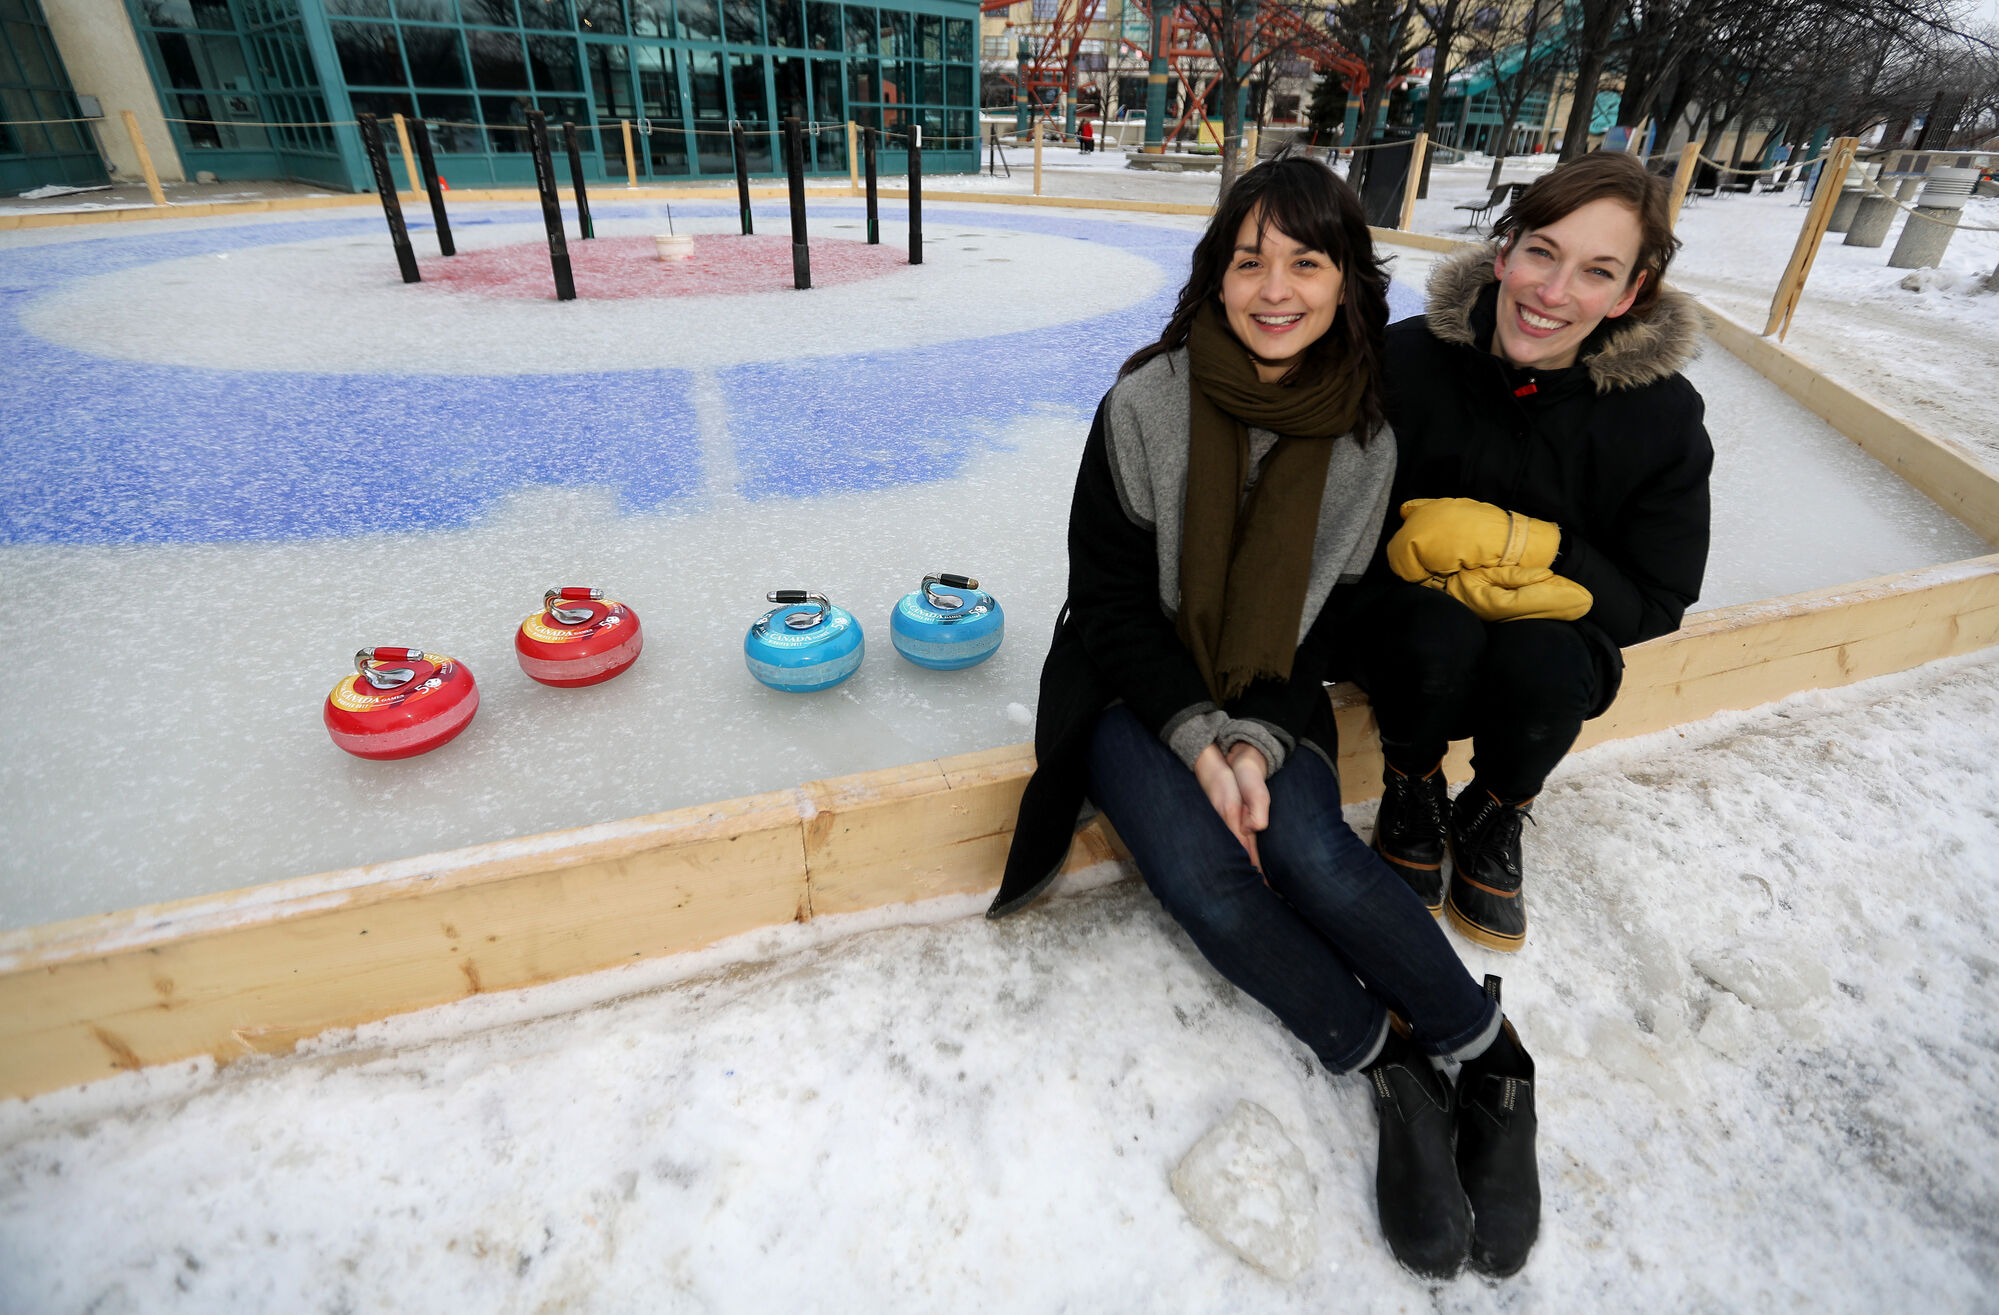 <p>TREVOR HAGAN / WINNIPEG FREE PRESS</p> <p>Leanne Muir, a landscape designer, and Liz Wreford, principal and landscape architect, with Public City Architecture, with their Crokicurl game at The Forks.</p>